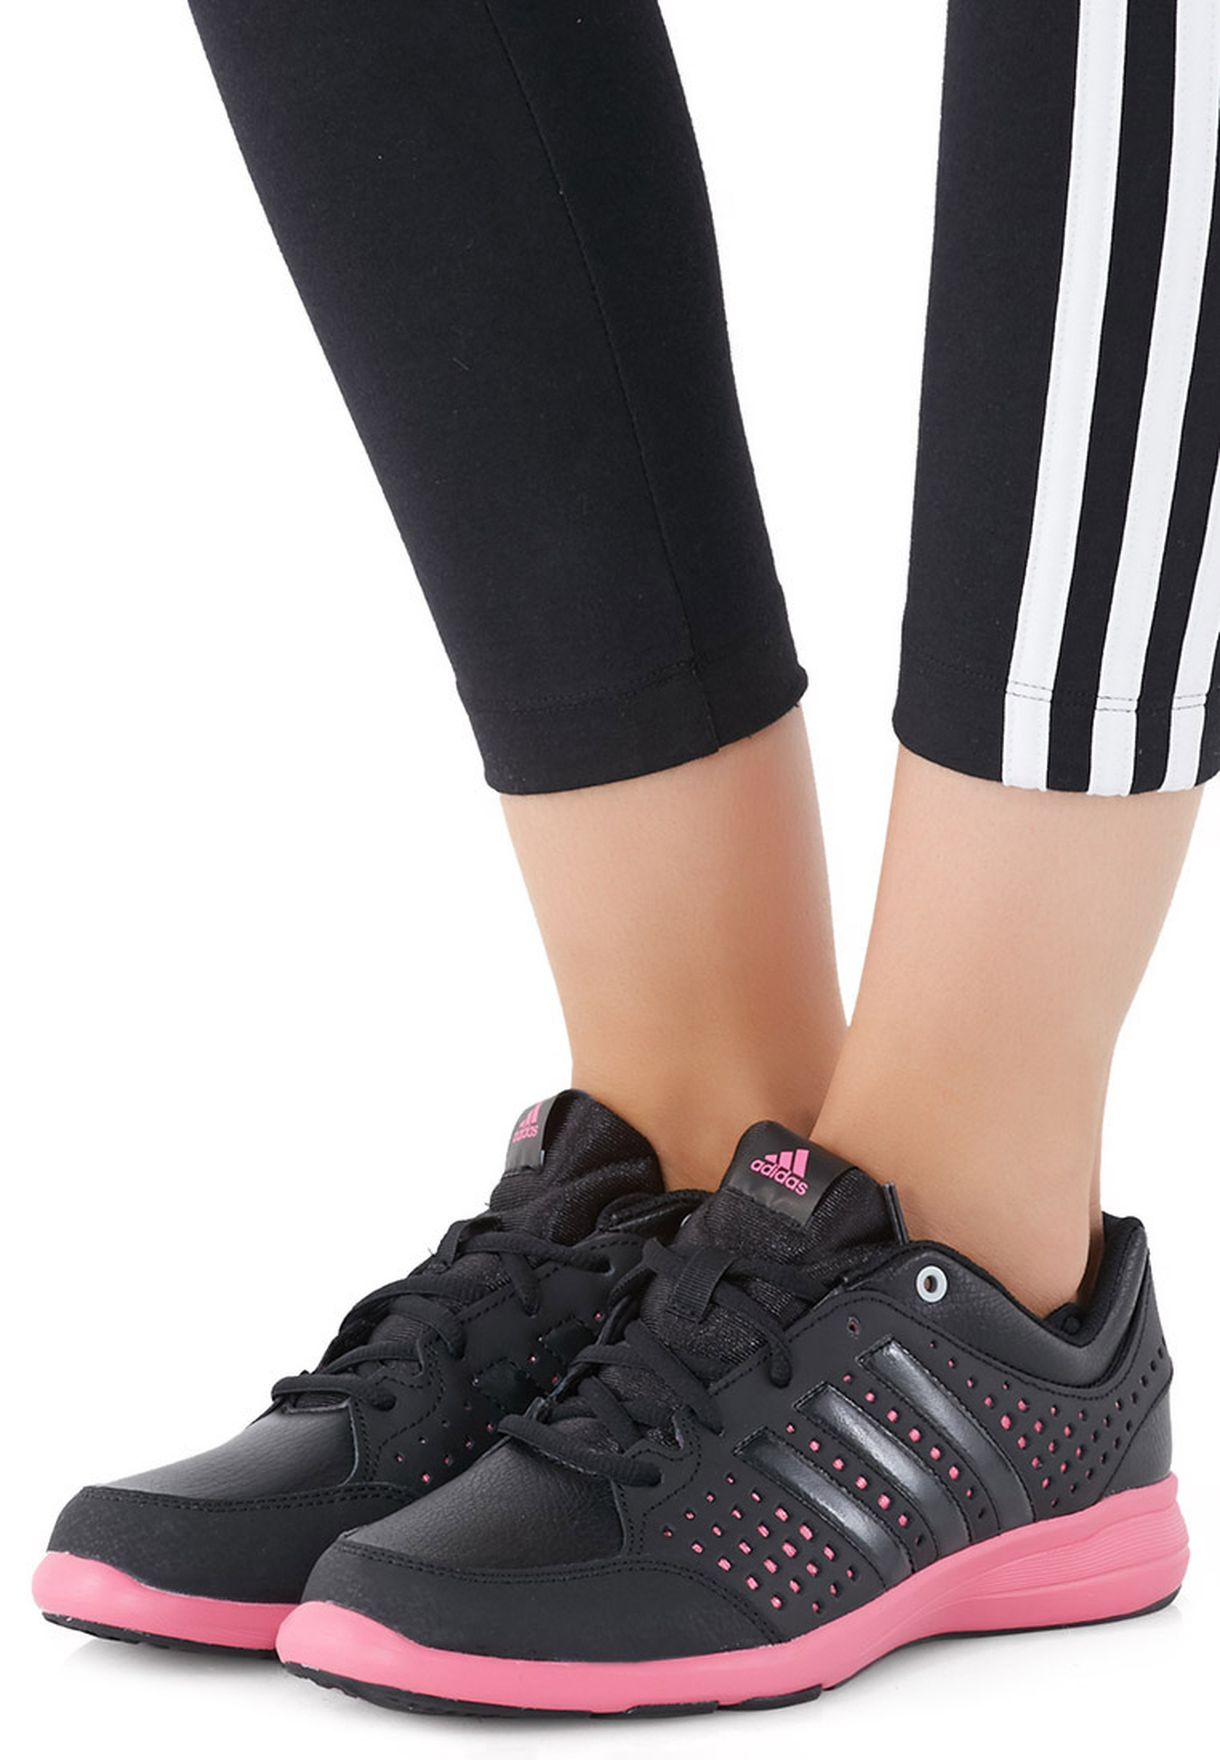 reputable site f6f58 43e2b Shop adidas black Arianna Iii M18149 for Women in Kuwait ...